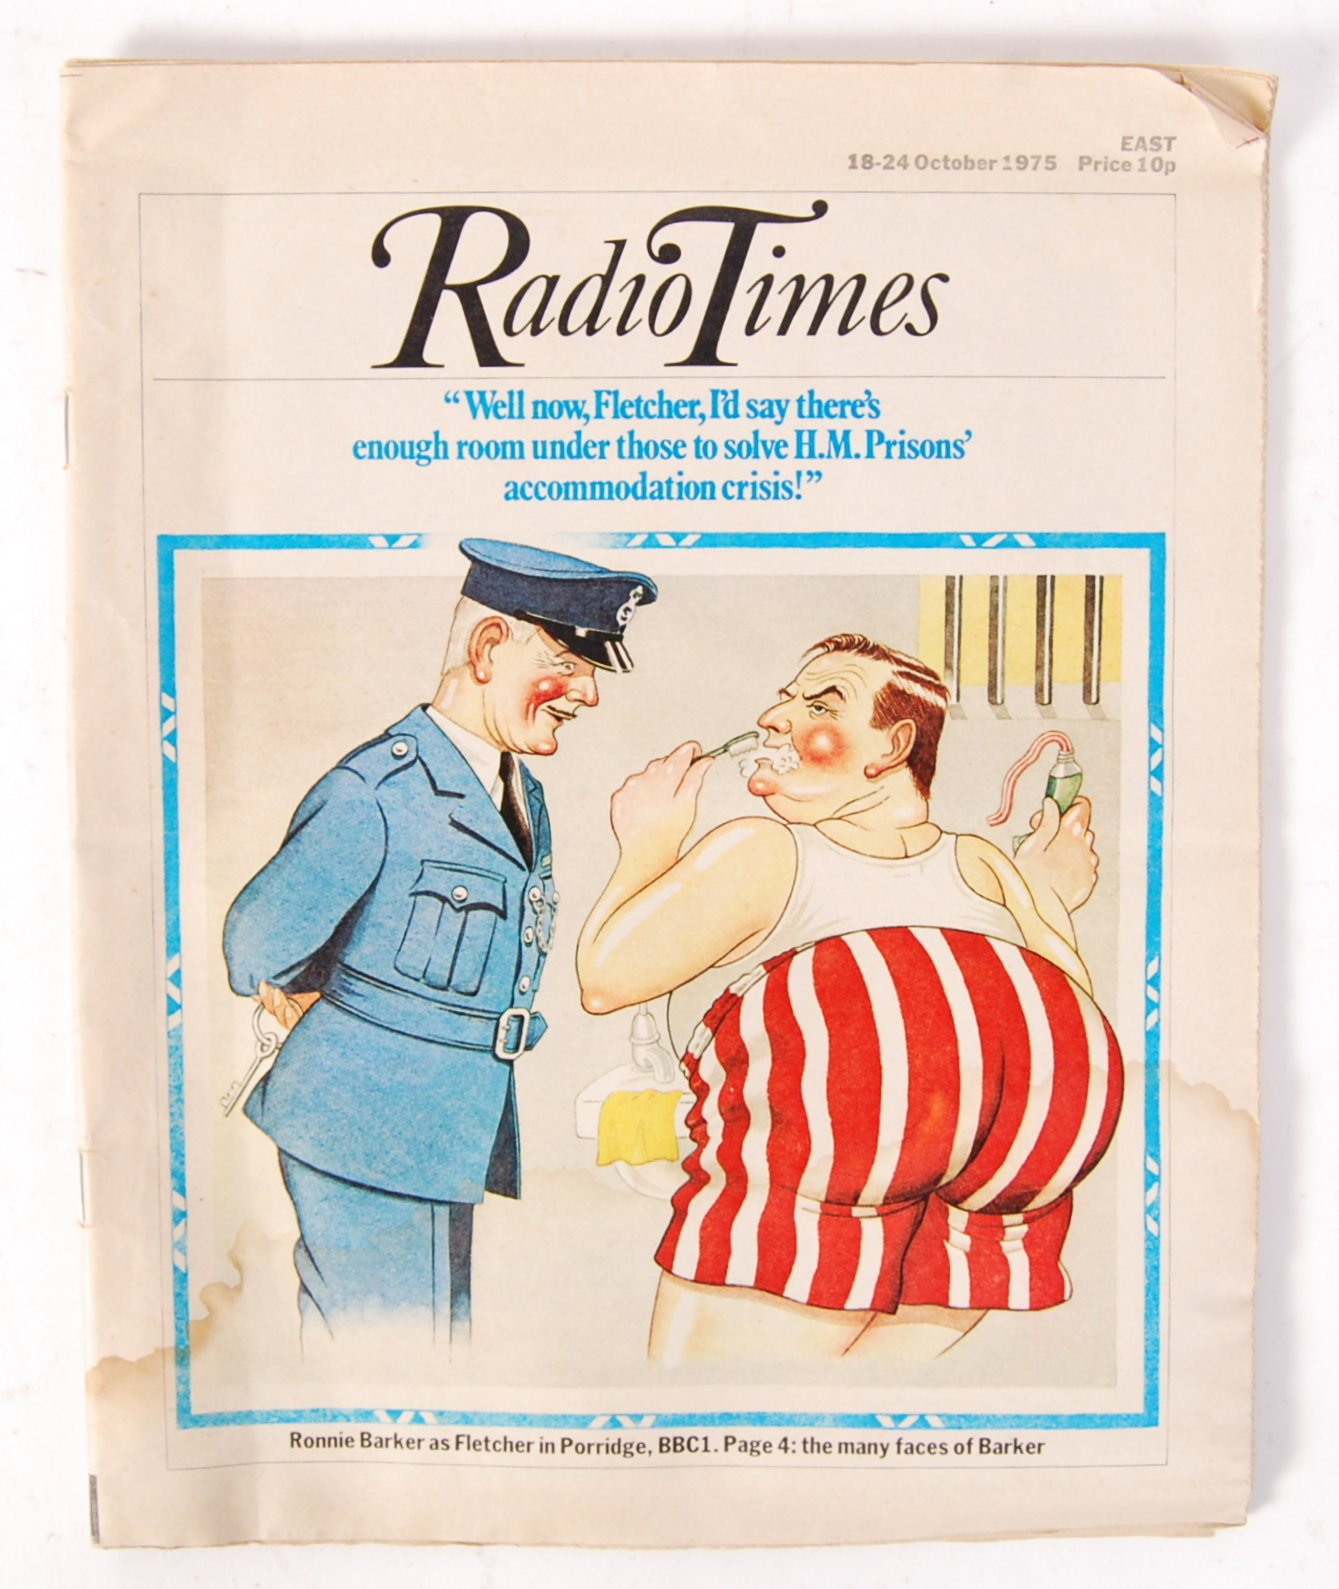 Lot 46 - RARE VINTAGE OCTOBER 1975 RADIO TIMES WITH ' PORRIDGE ' COVER